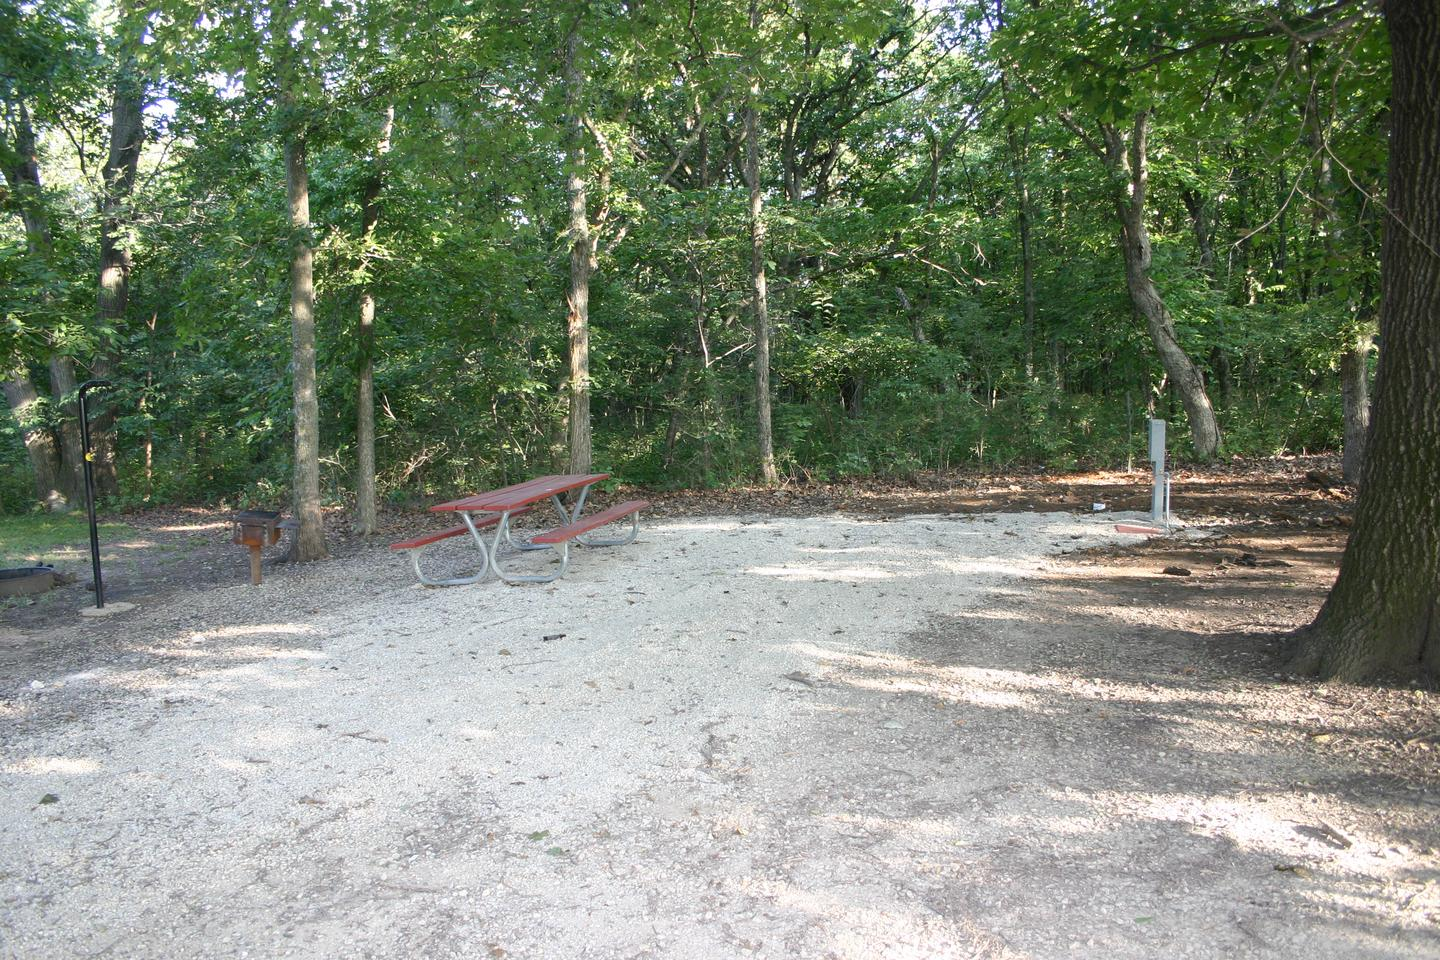 Bloomington West Park Campground example siteThe Bloomington West group campground features 4 electric sites and many additional non-electric sites with all the basic campsite ammenities